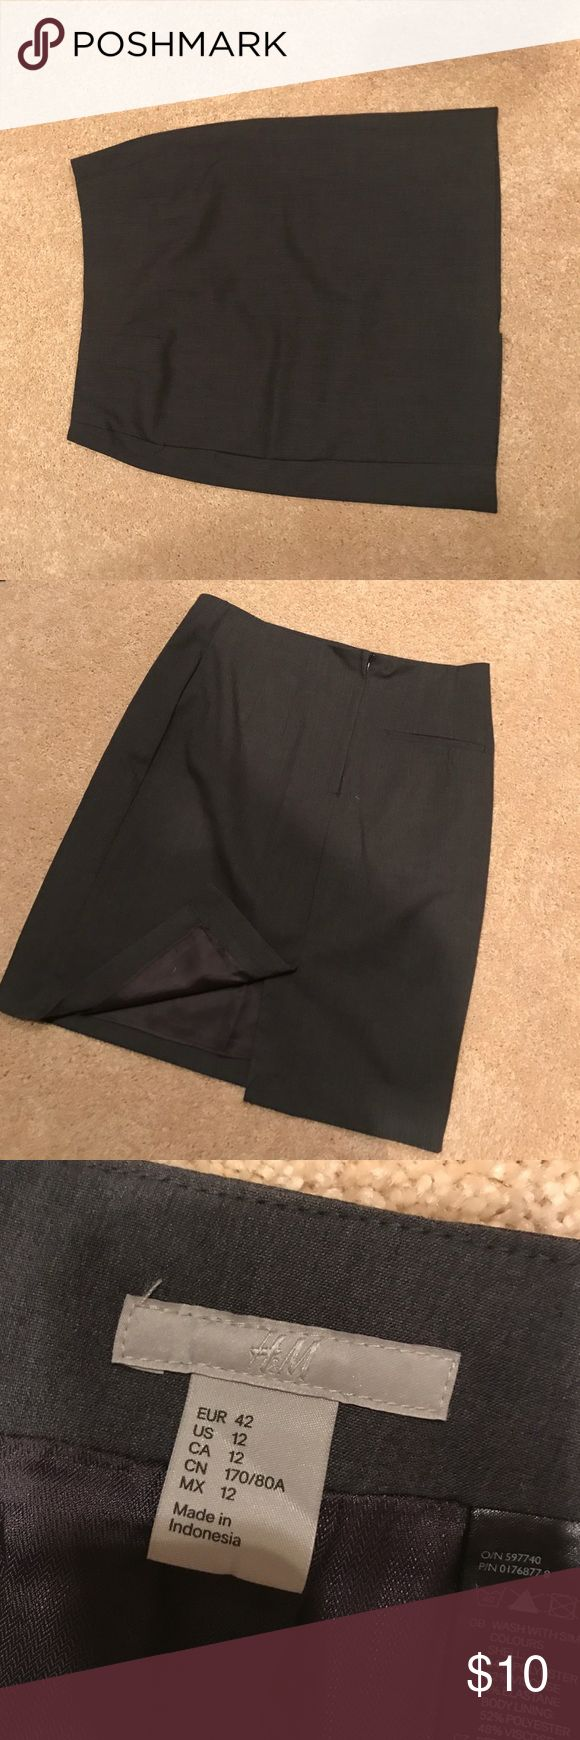 H&M Gray Pencil Skirt Knee Length Gray Pencil Skirt from H&M Size 12. Center Zip up in back and small slit at hem line. Great for work!! H&M Skirts Pencil